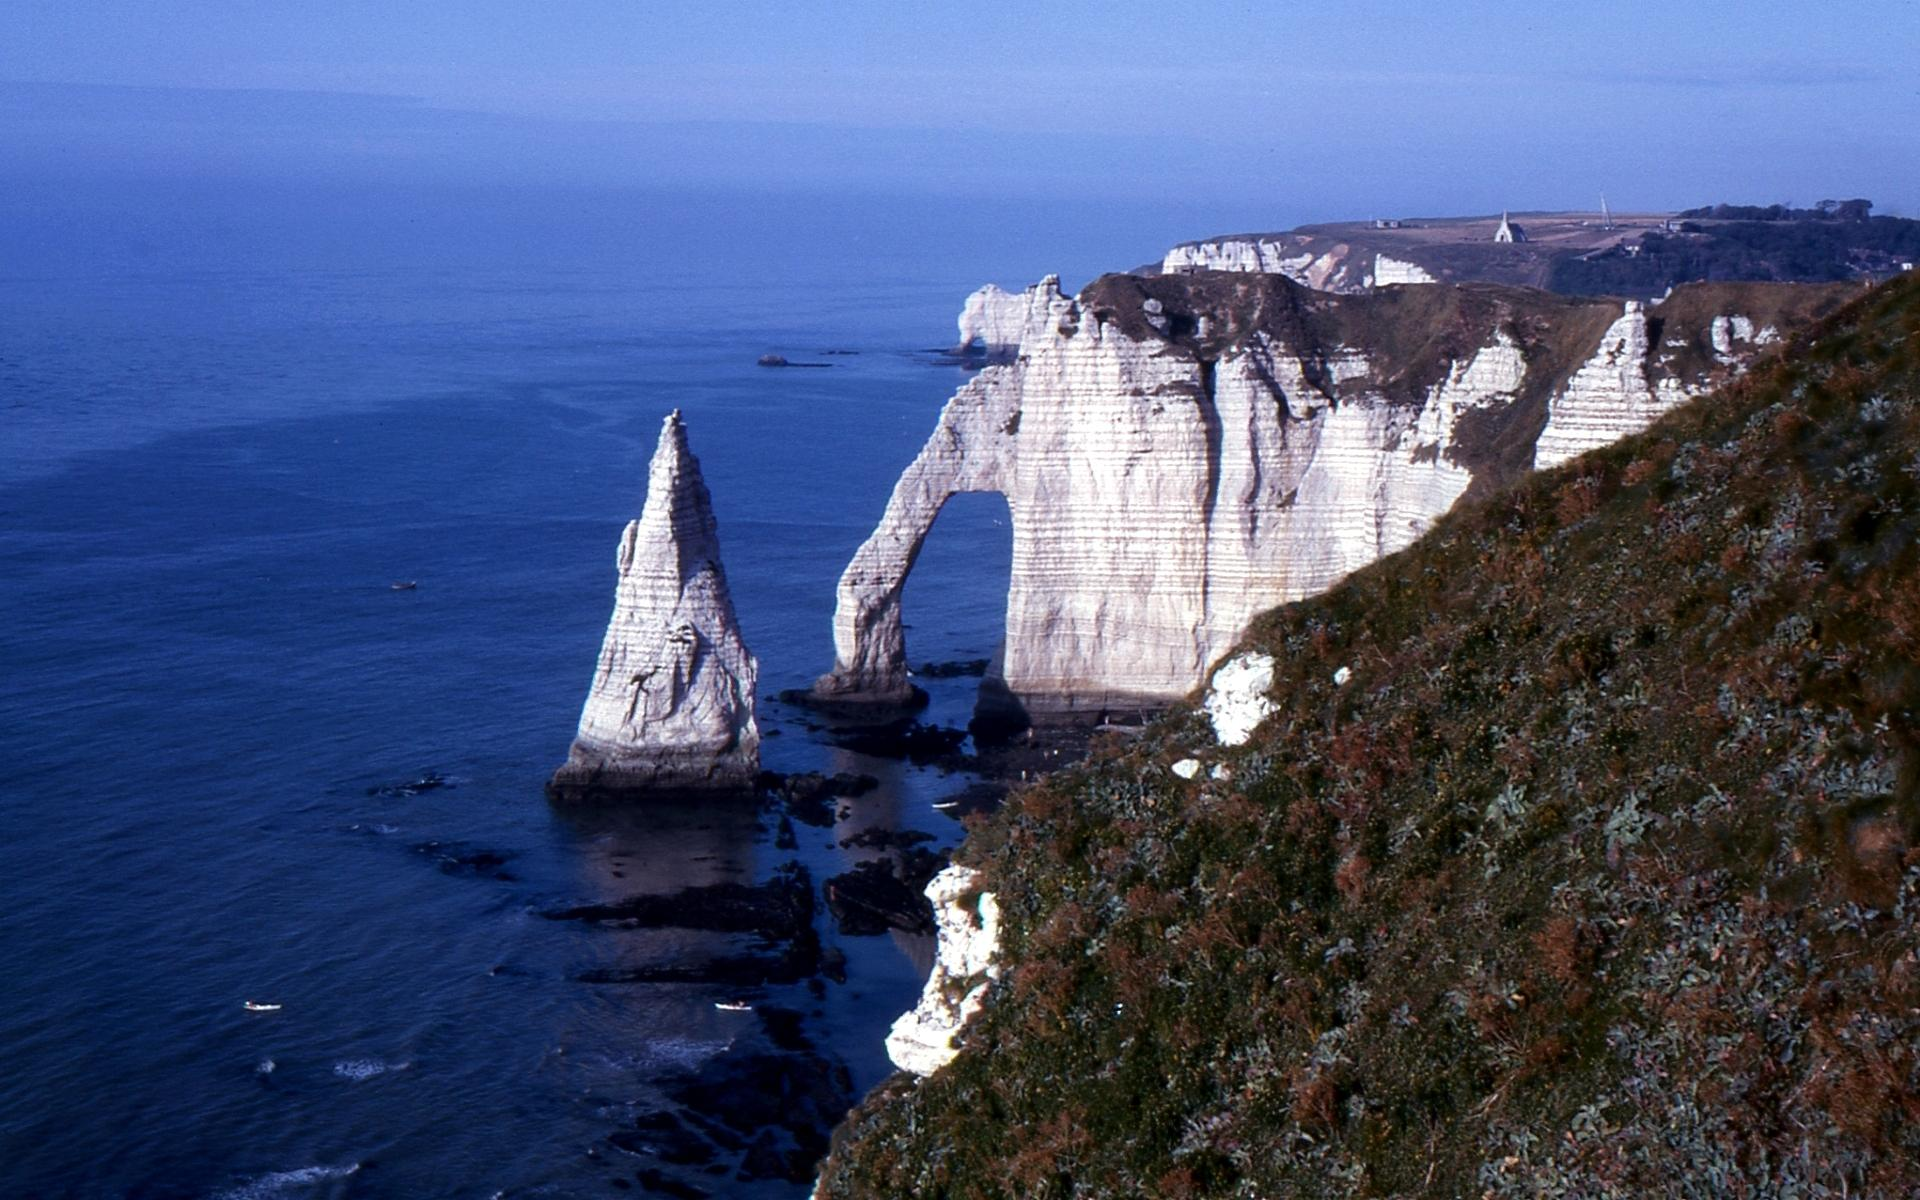 Download Wallpaper For 1400x1050 Resolution Etretat